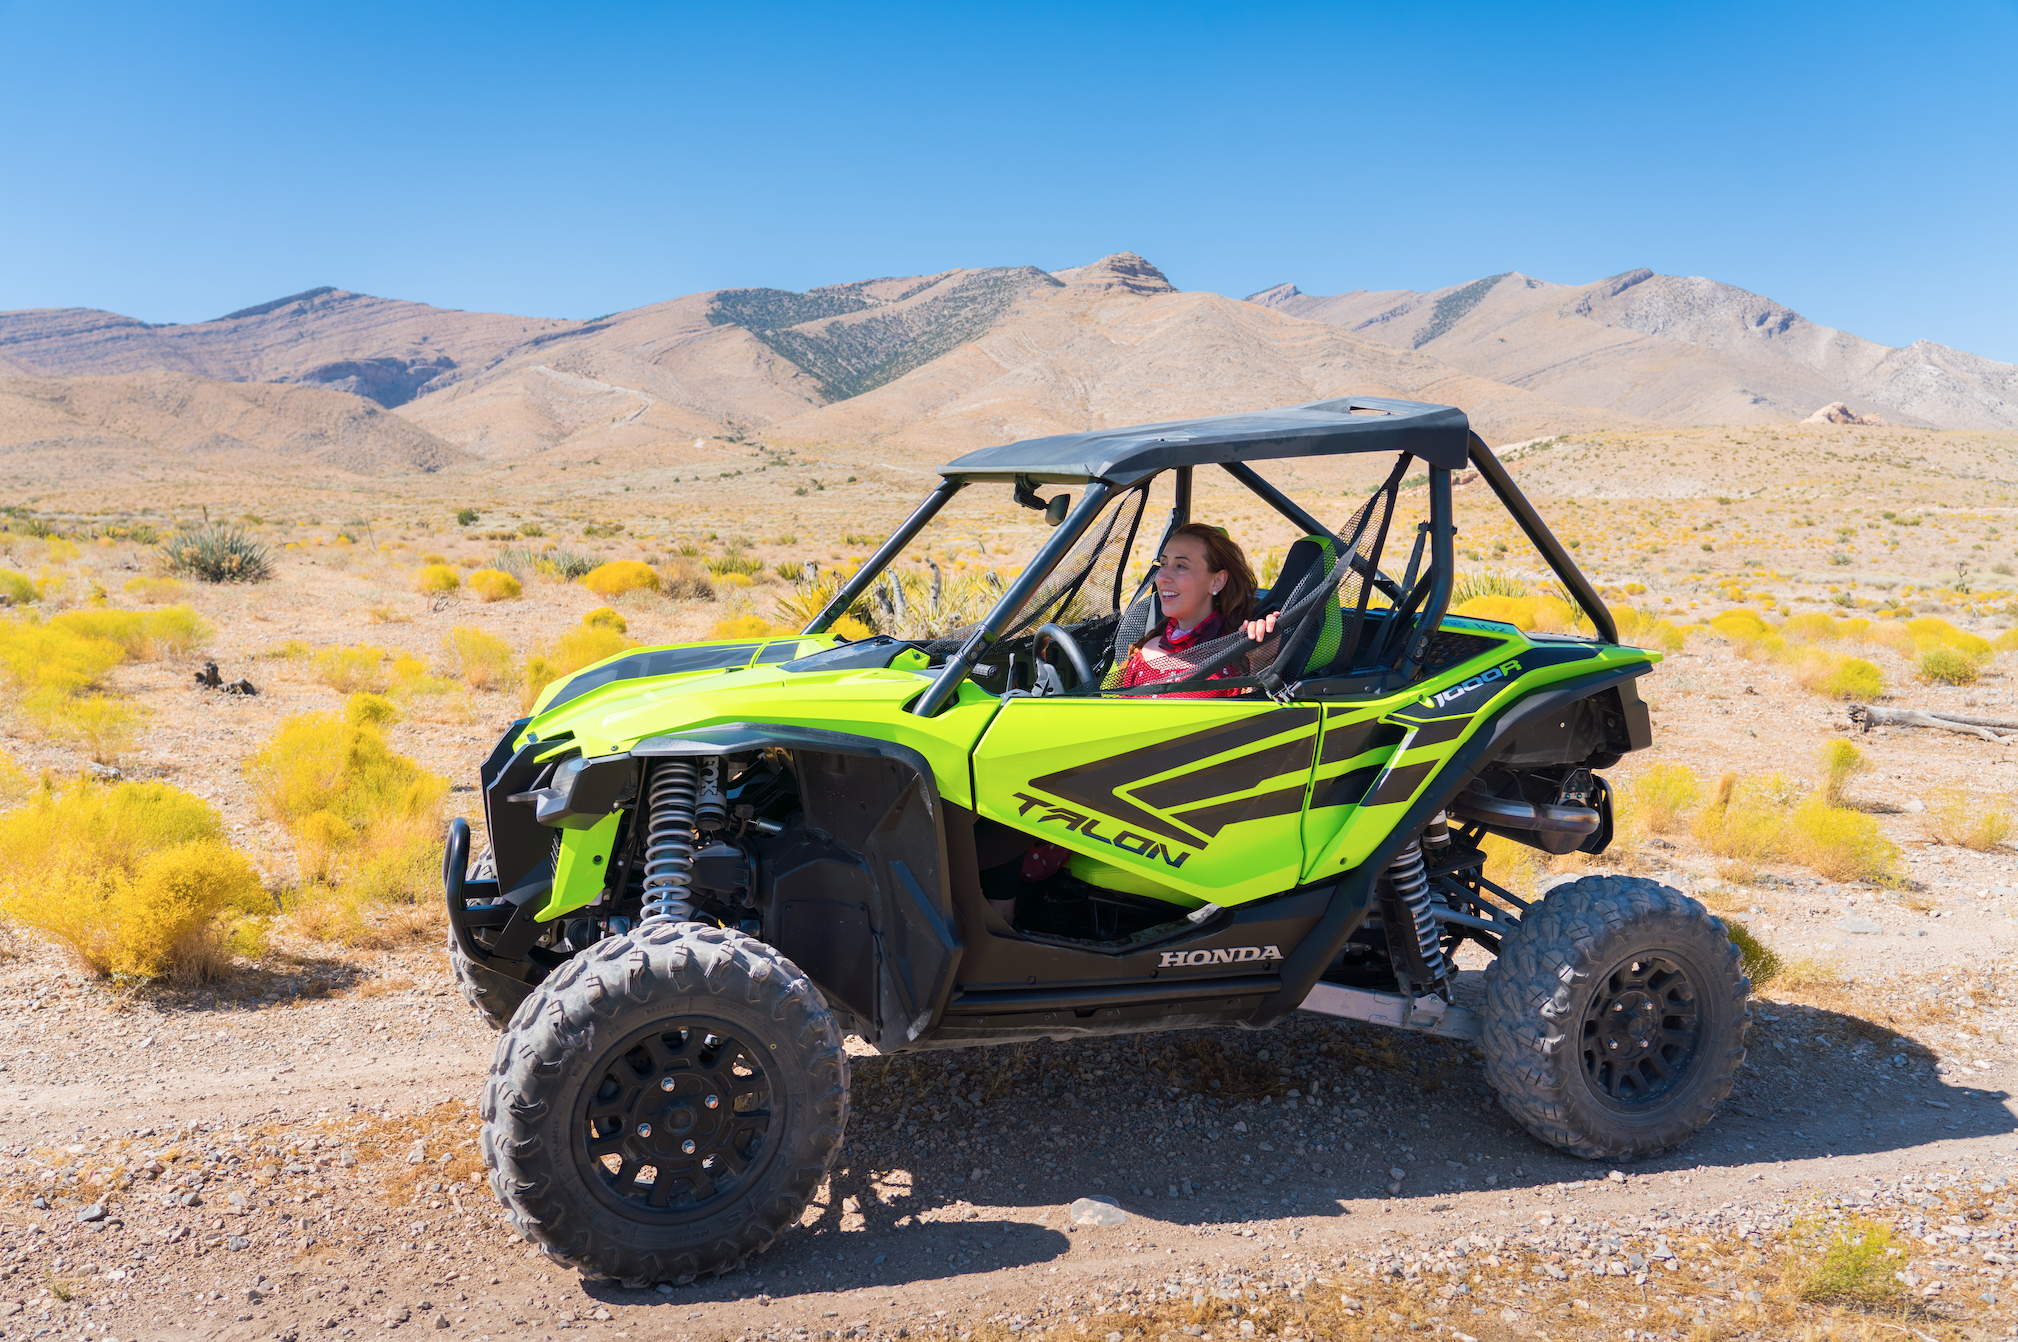 Driving ATV's in the Mojave Desert is one of the best day trips from Las Vegas